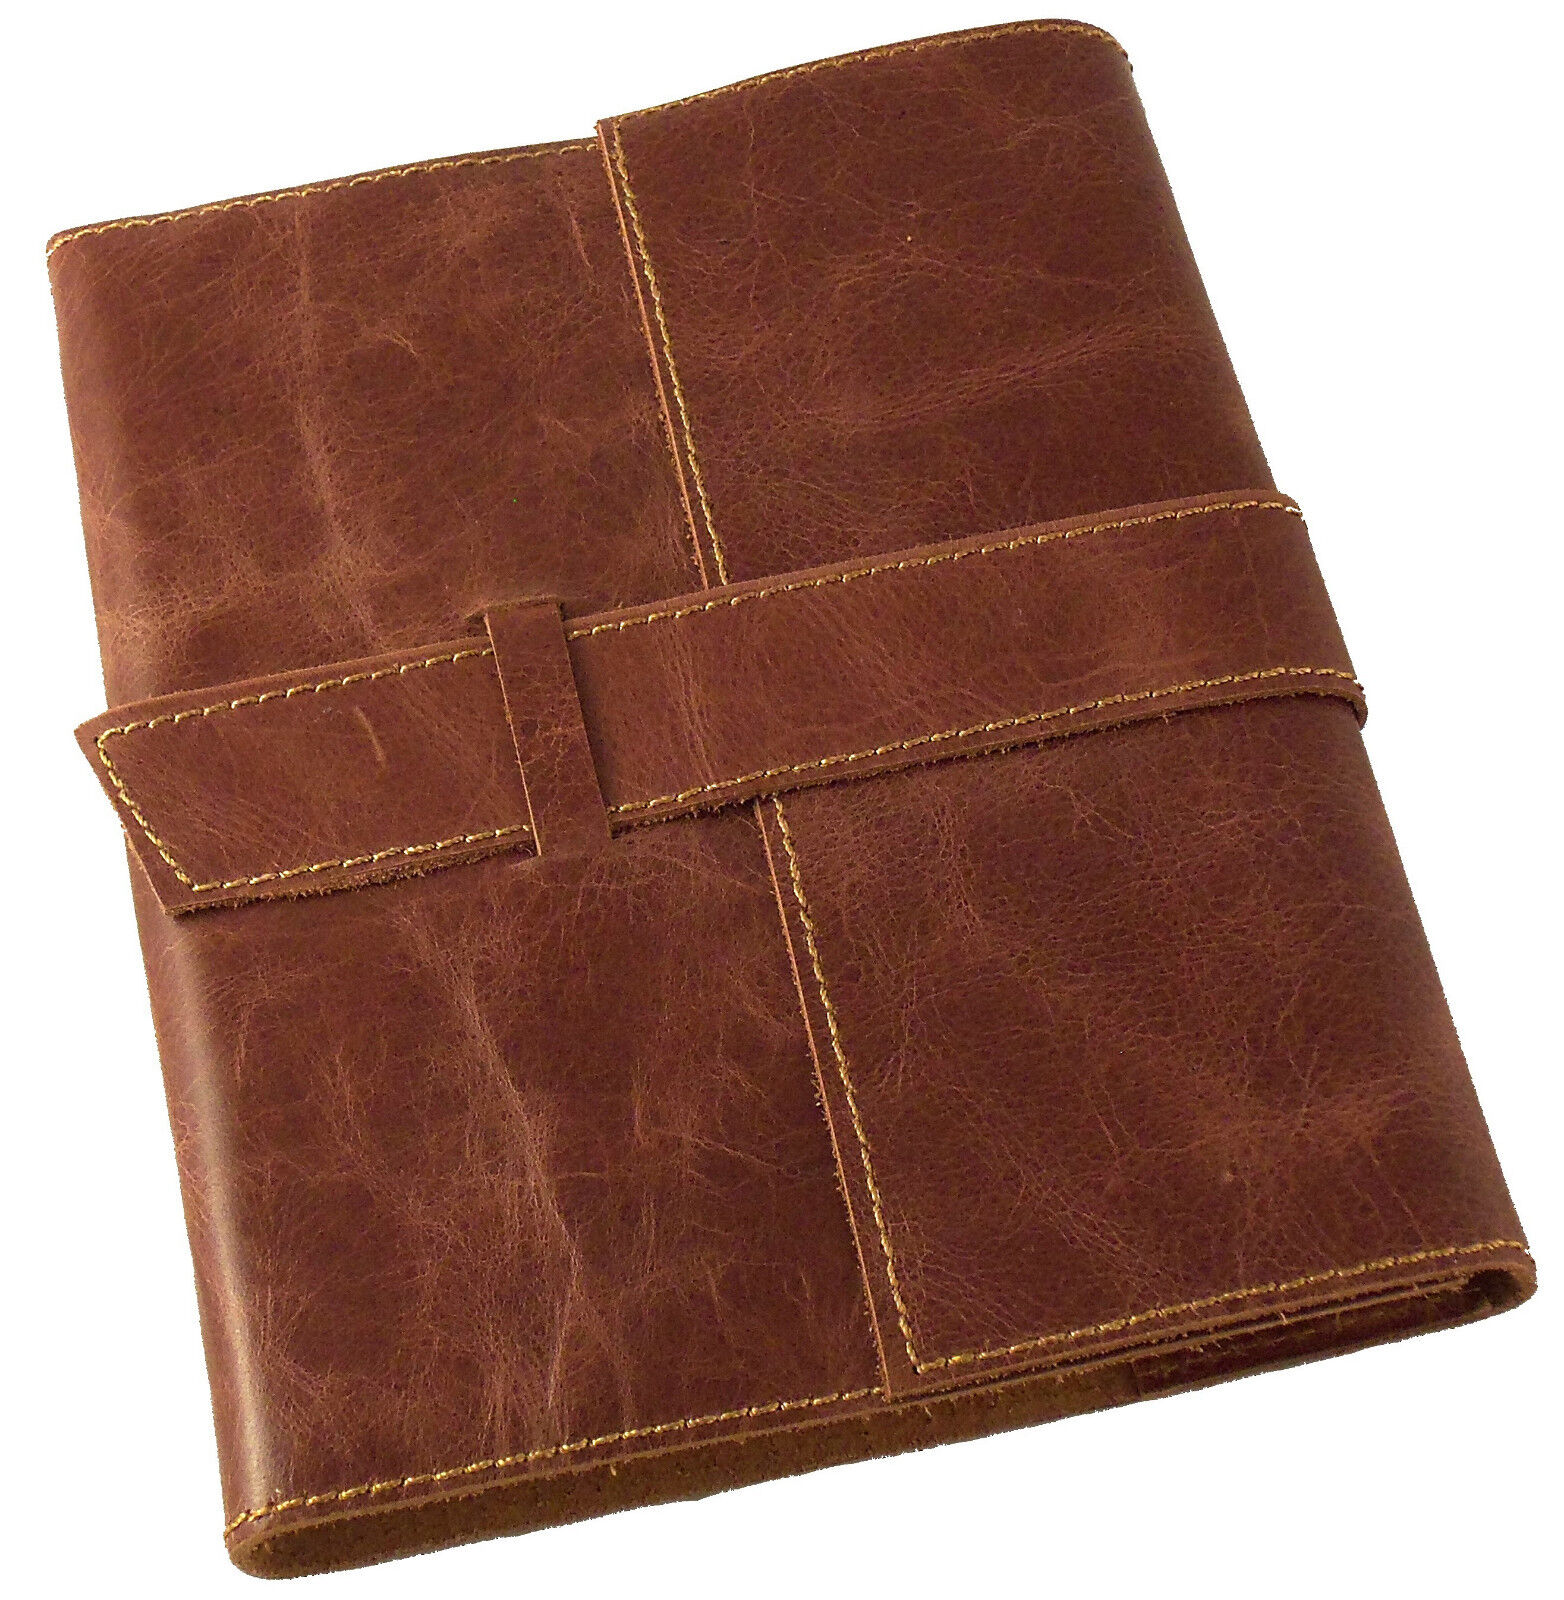 REFILLABLE Leather Travel Journal Sketchbook Notebook Diary Retro Vintage RUSTIC 4